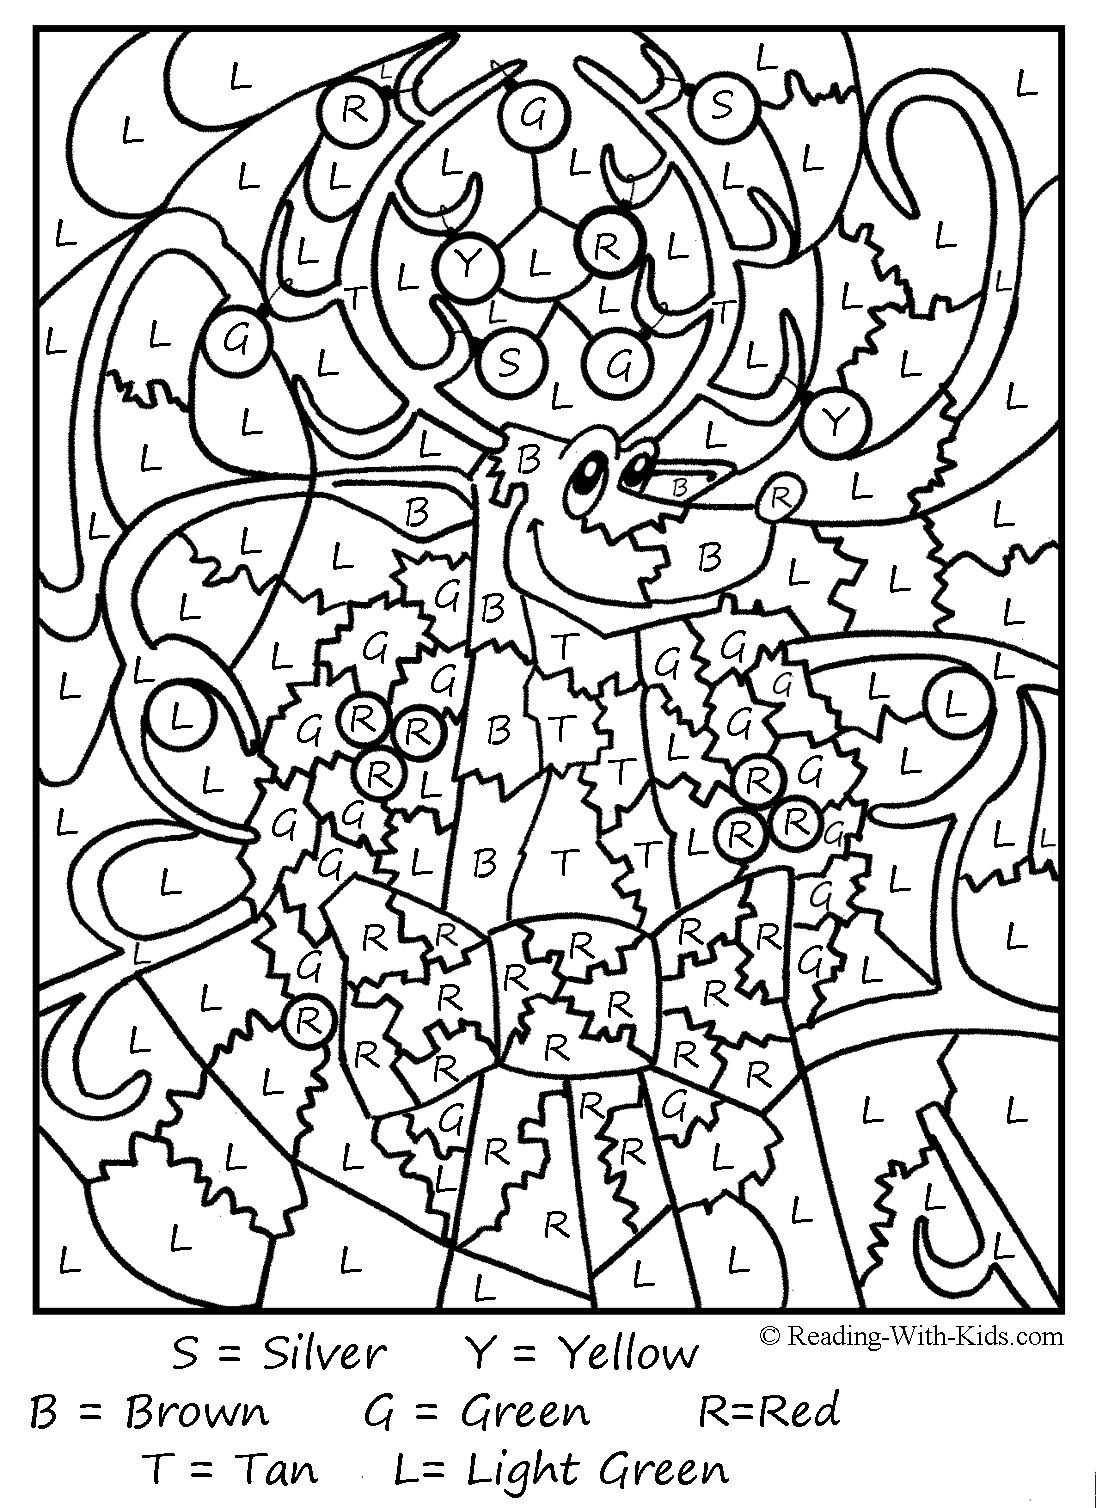 Pin by Eliza Dudley on Coloring Pages Pinterest Colorir Natal